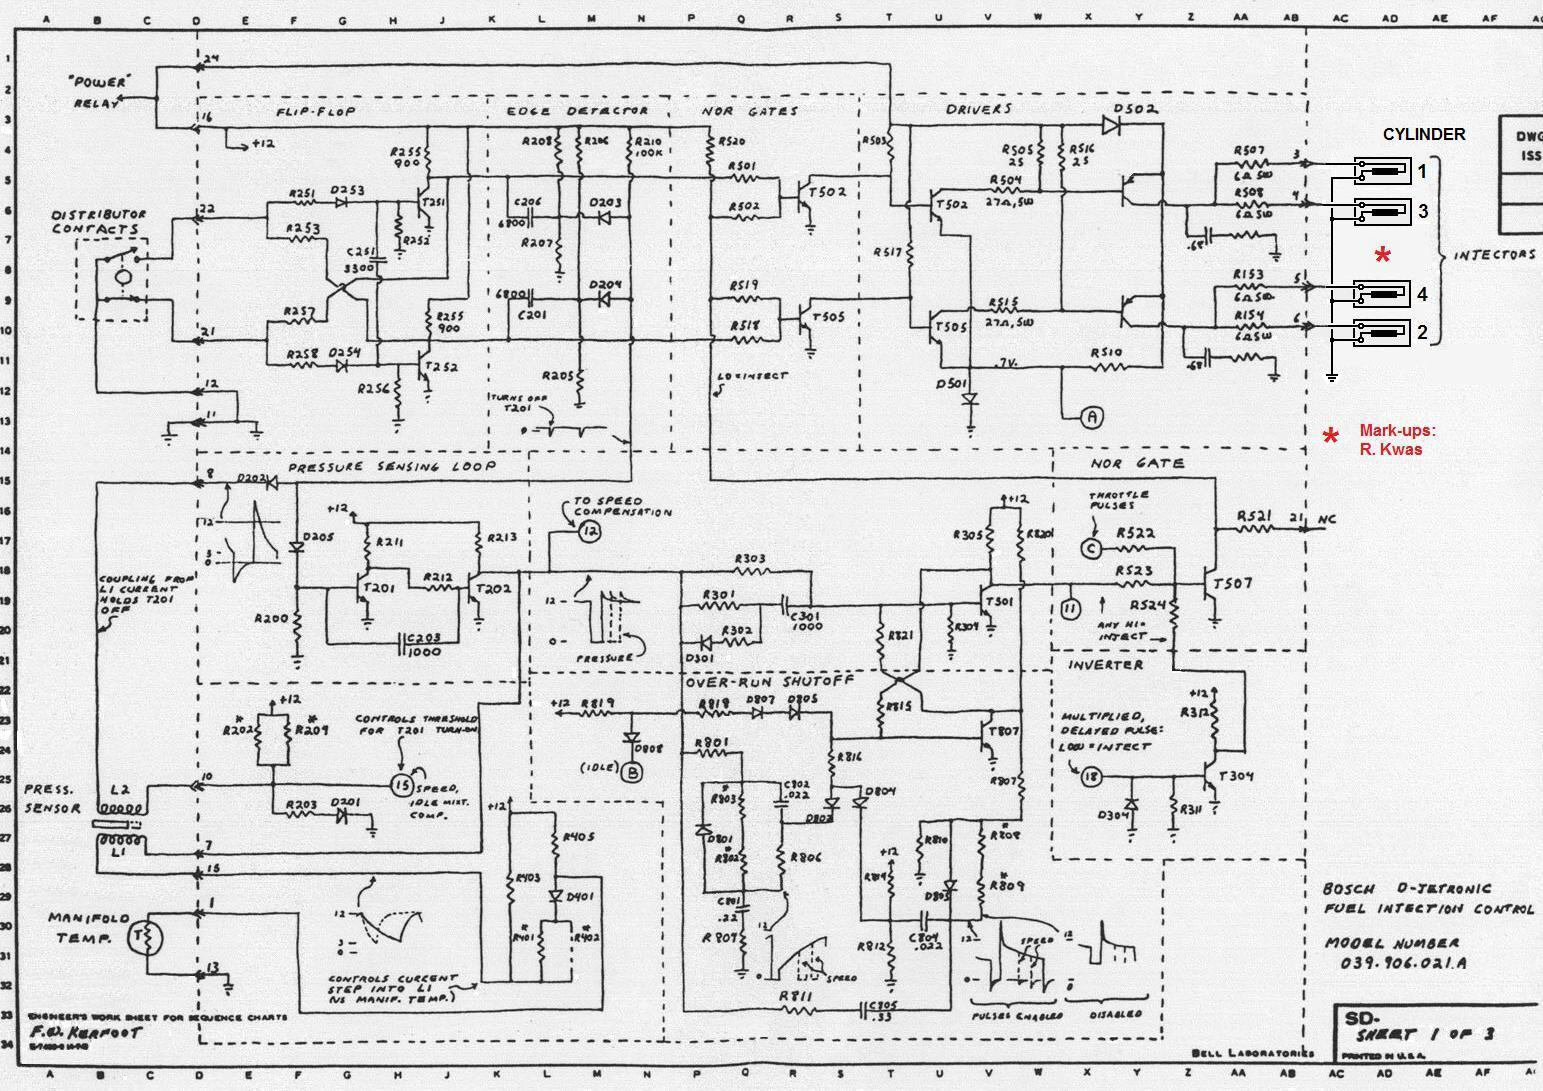 Bosch ecu wiring diagram 24 wiring diagram images wiring d jetronicecuschematic1touchedup bosch d jet notes bosch ecu wiring diagram pdf at aneh cheapraybanclubmaster Image collections